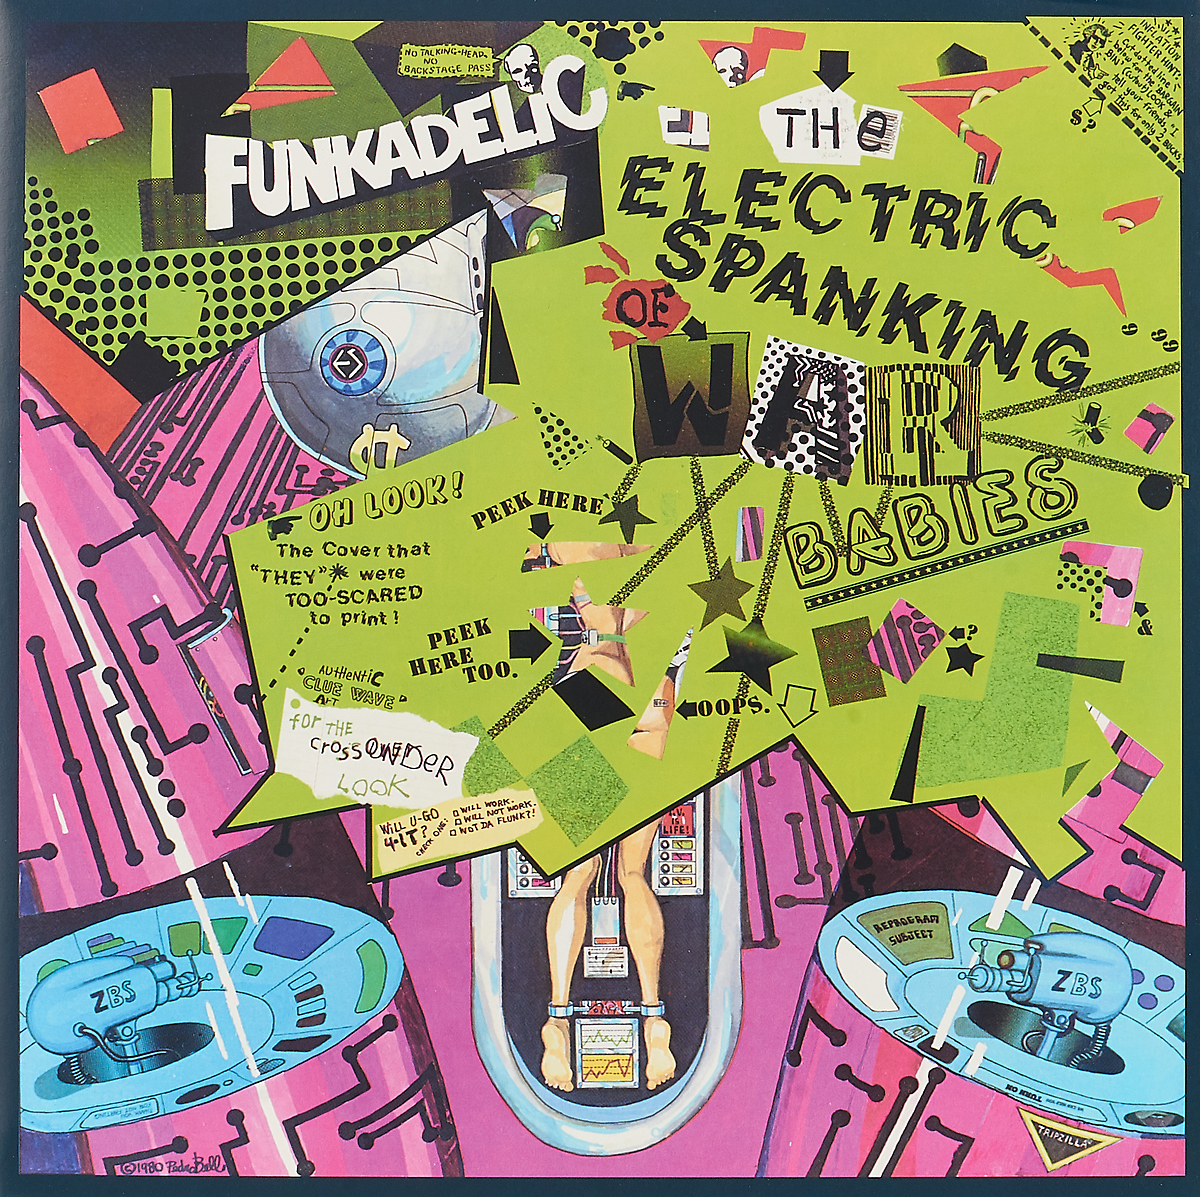 Funkadelic Funkadelic. The Electric Spanking Of War Babies (LP) кпб d 97